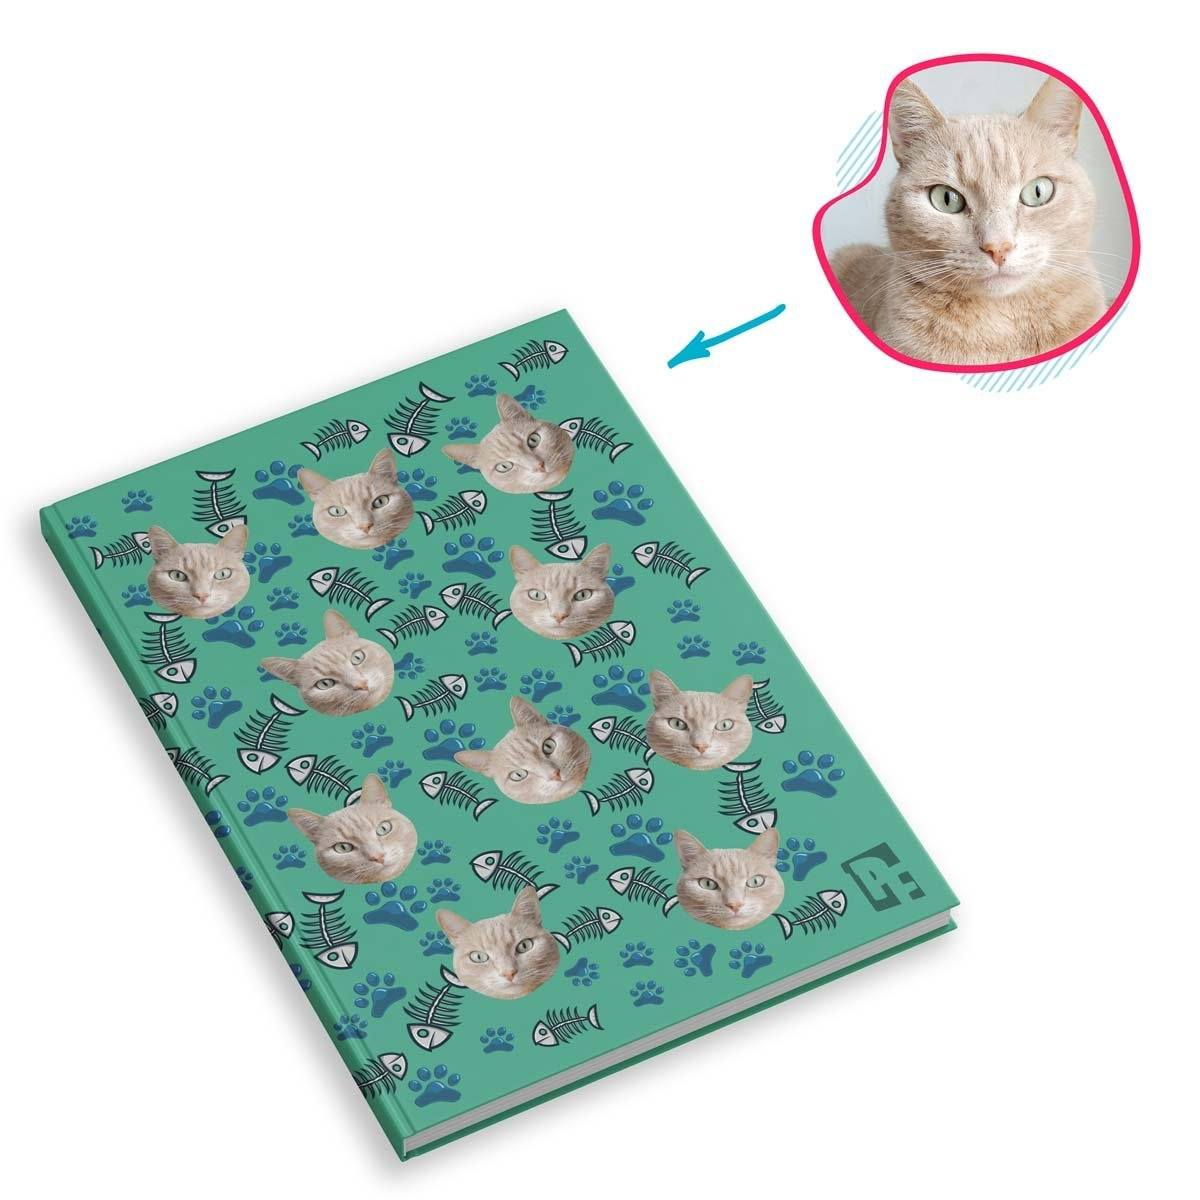 mint Cat Notebook personalized with photo of face printed on them